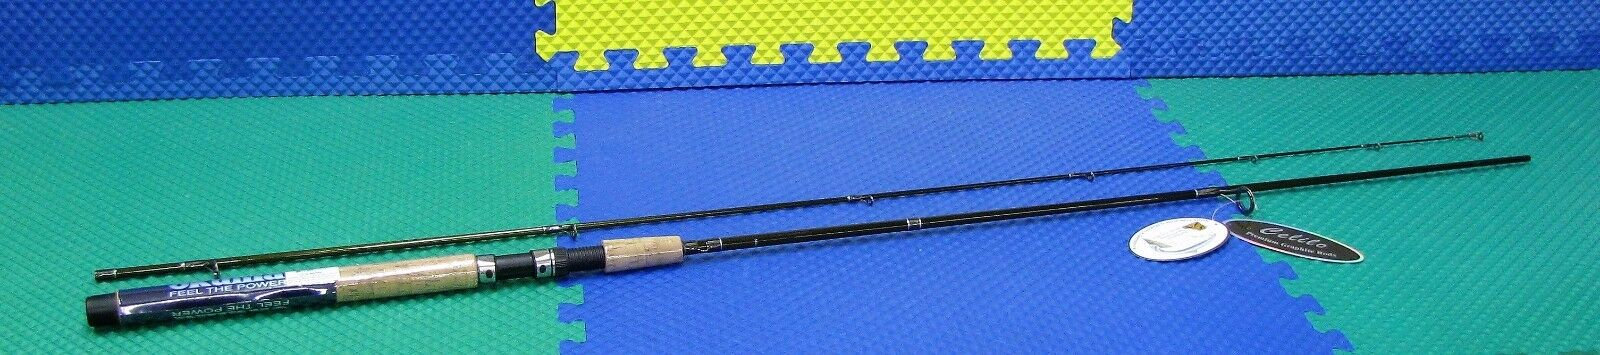 Okuma Celilo Premium Graphite Spinning Rod 8'6  2-Piece Medium Action CE-S-862Ma